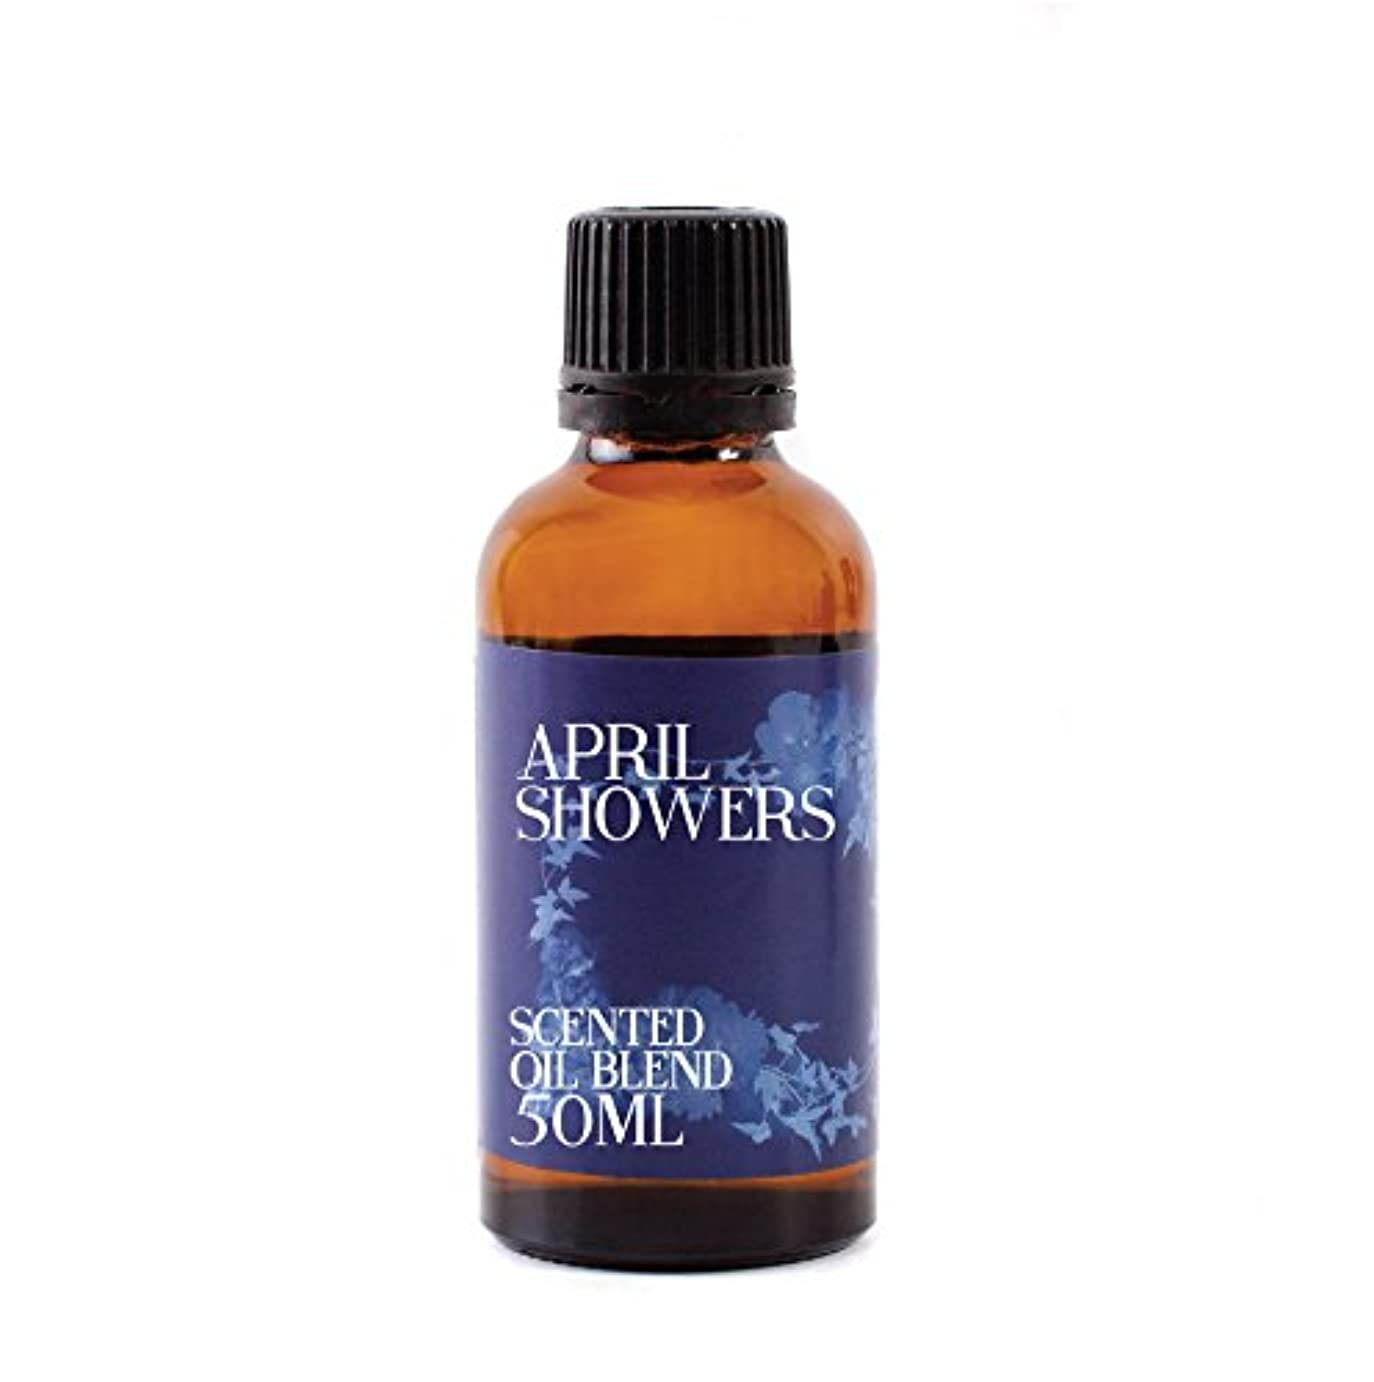 自然公園道徳のクレタMystic Moments | April Showers - Scented Oil Blend - 50ml